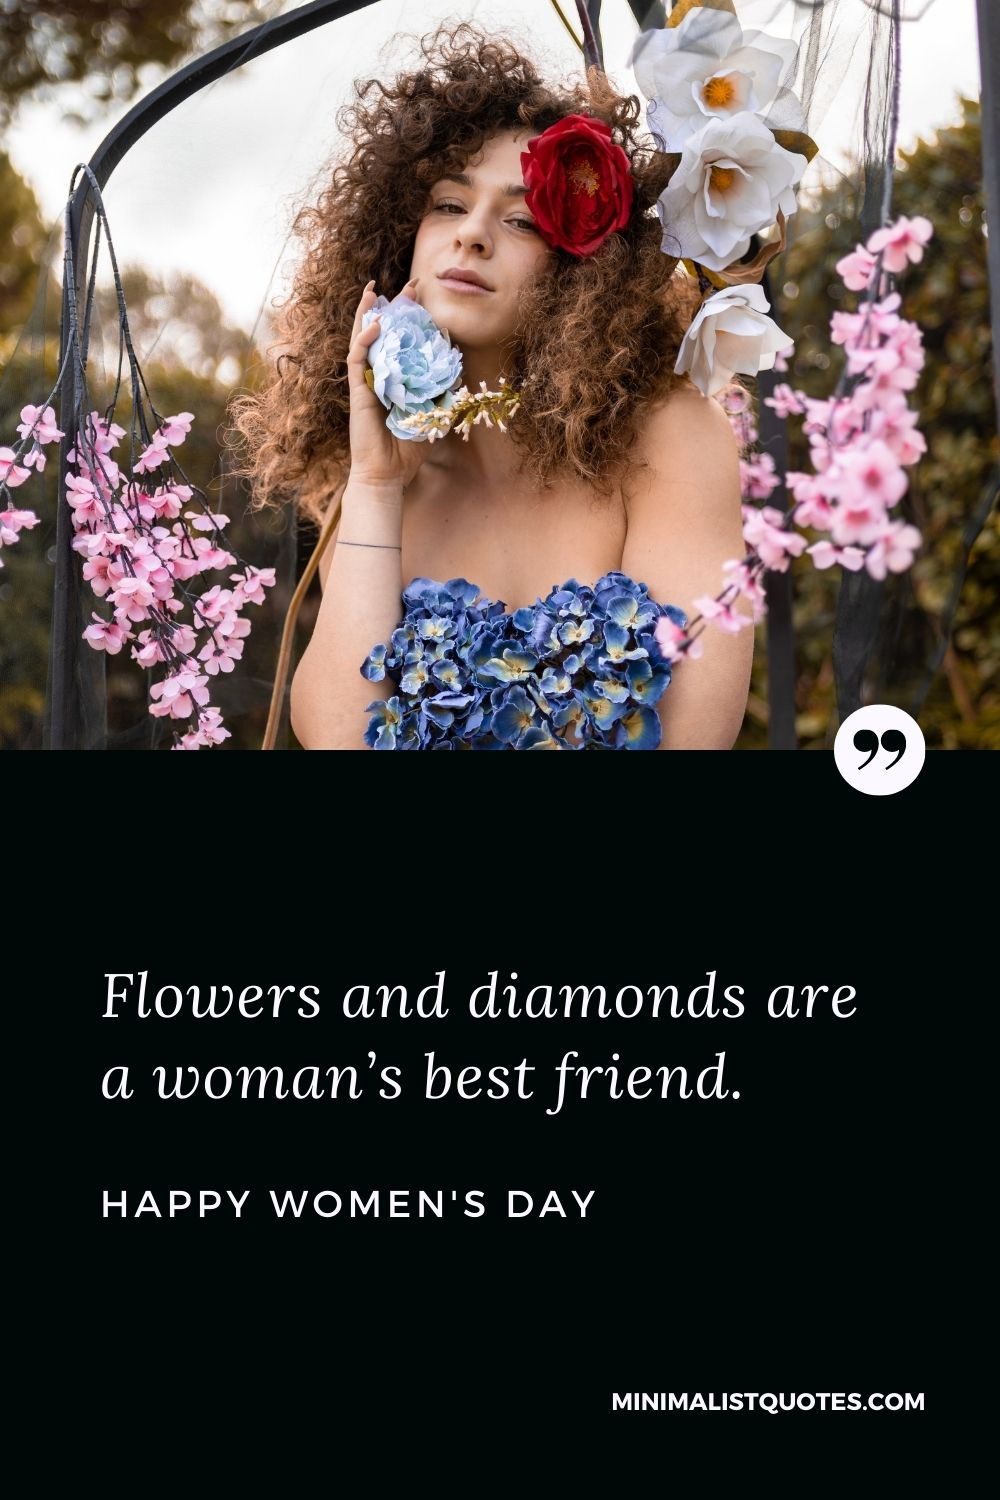 Women's Day Wish & Message With Image: Flowers and diamonds are a woman's best friend. Happy Women's Day!